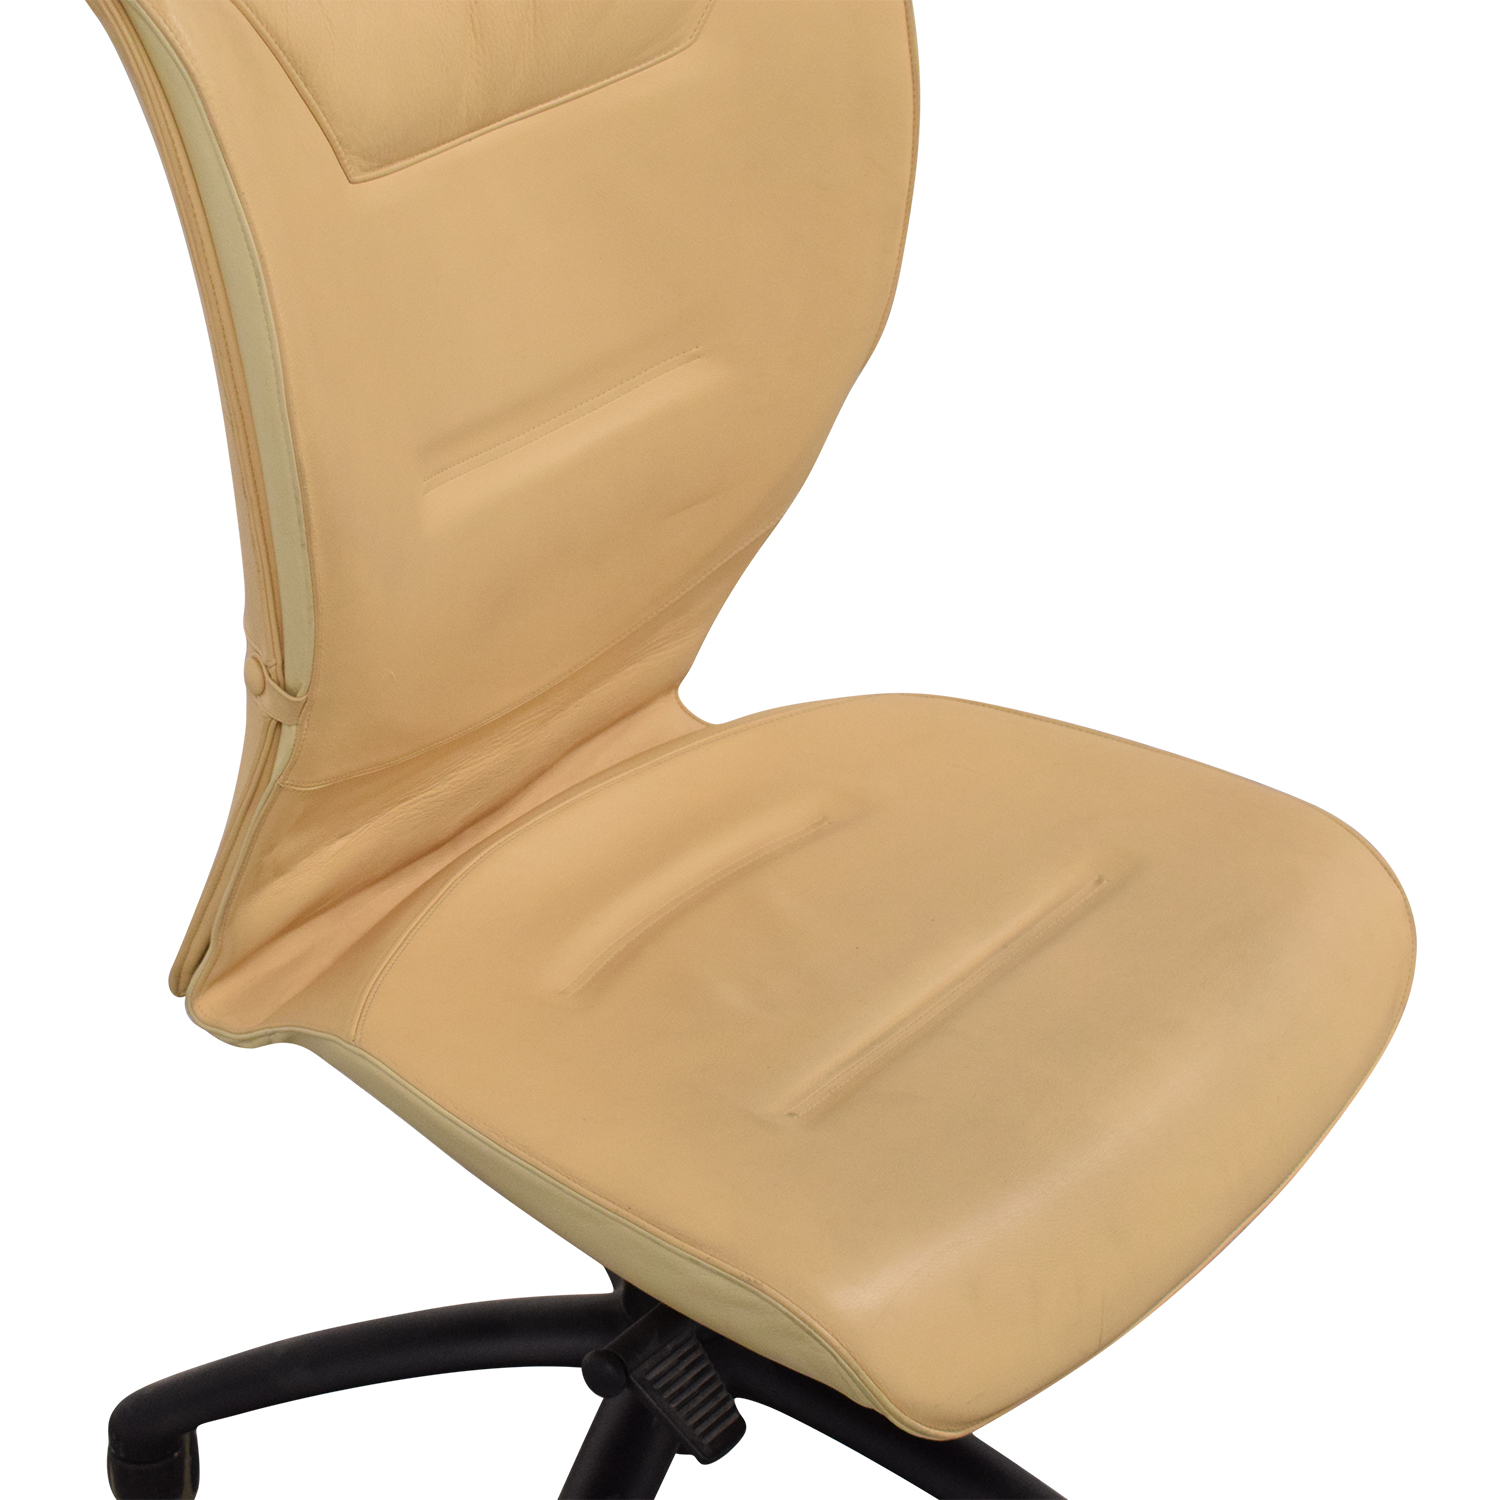 Poltrona Frau Poltrona Frau Office Chair yellow